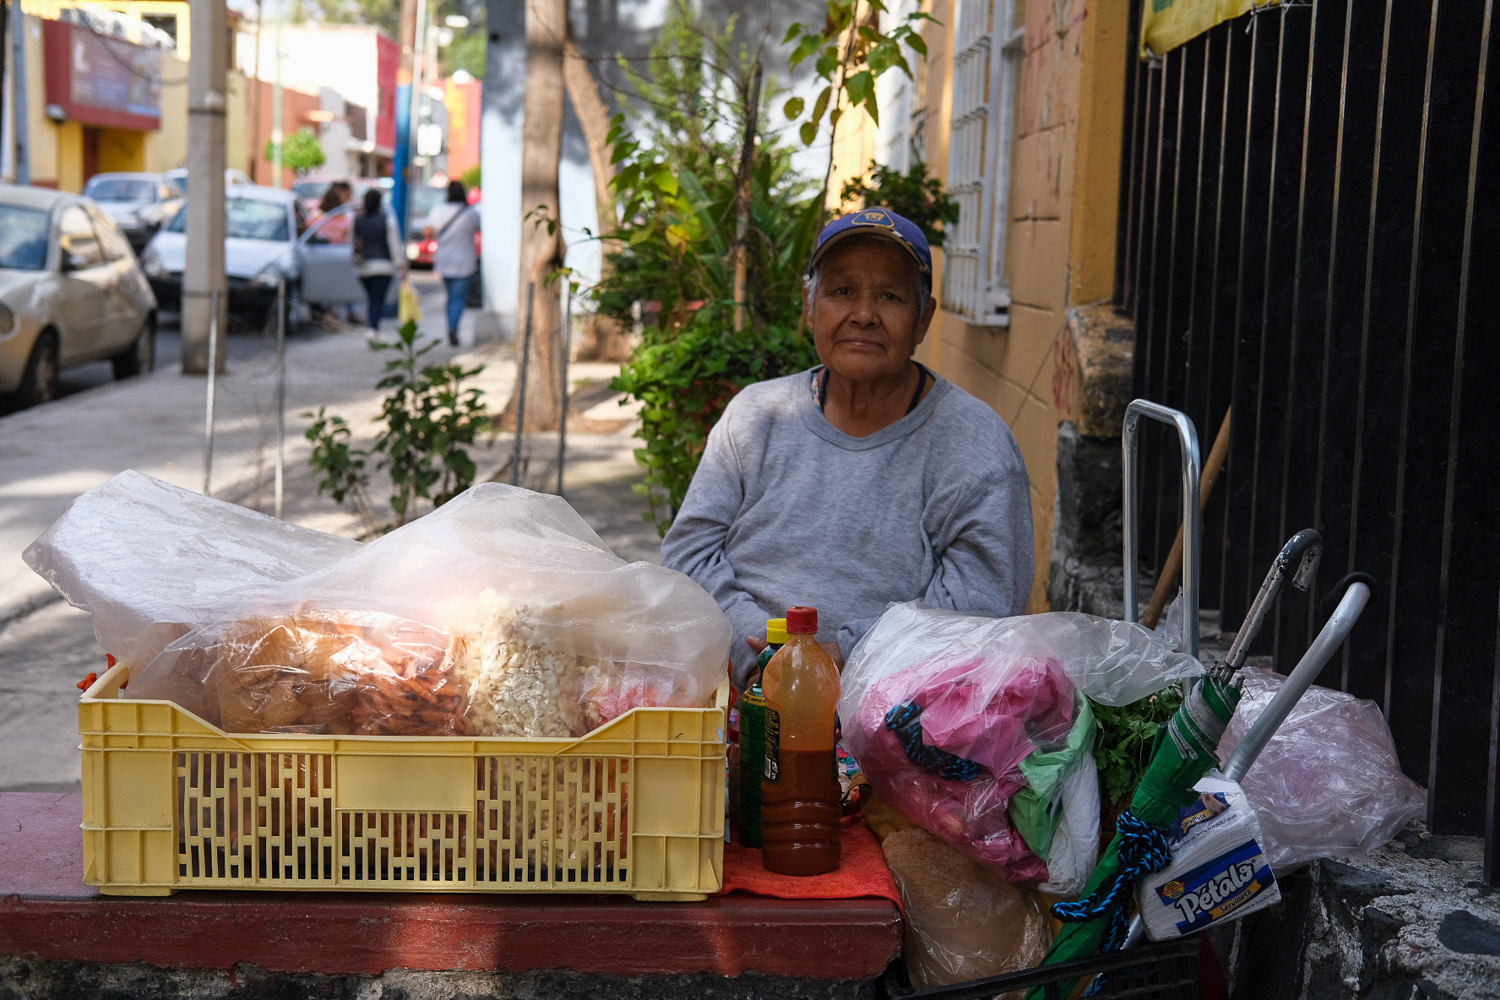 I'll end with this photo of this woman selling snacks in Mexico City. I saw her and thought of the street vendors in LA, the majority of whom are women. I thought of the resilience that people on either side of the border have to have every day in order to survive. Seeing people's resilience helped to reaffirm why we do this work. We do it because we see the resilience in our communities and the lengths to which people go just to make a living. And, ultimately, we do this work to create a world in which people don't have to be this resilient  just  to survive. A world where they have more opportunity.